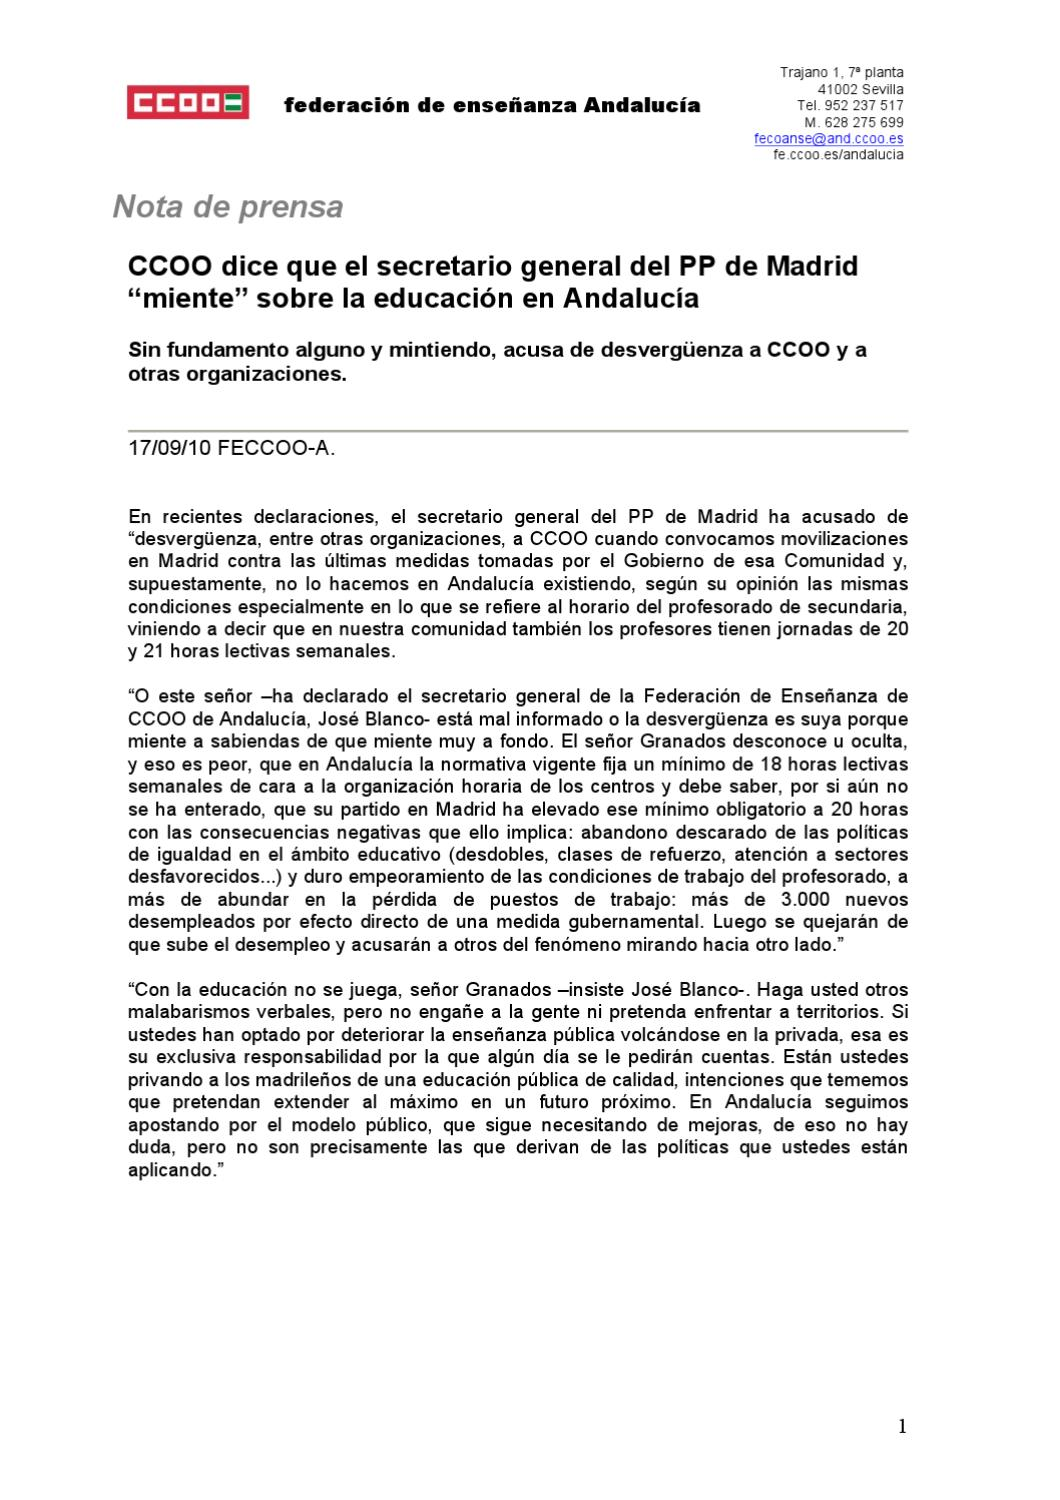 Nota prensa 17 09 2010 by federaci n de ense anza de ccoo for Ccoo ensenanza madrid